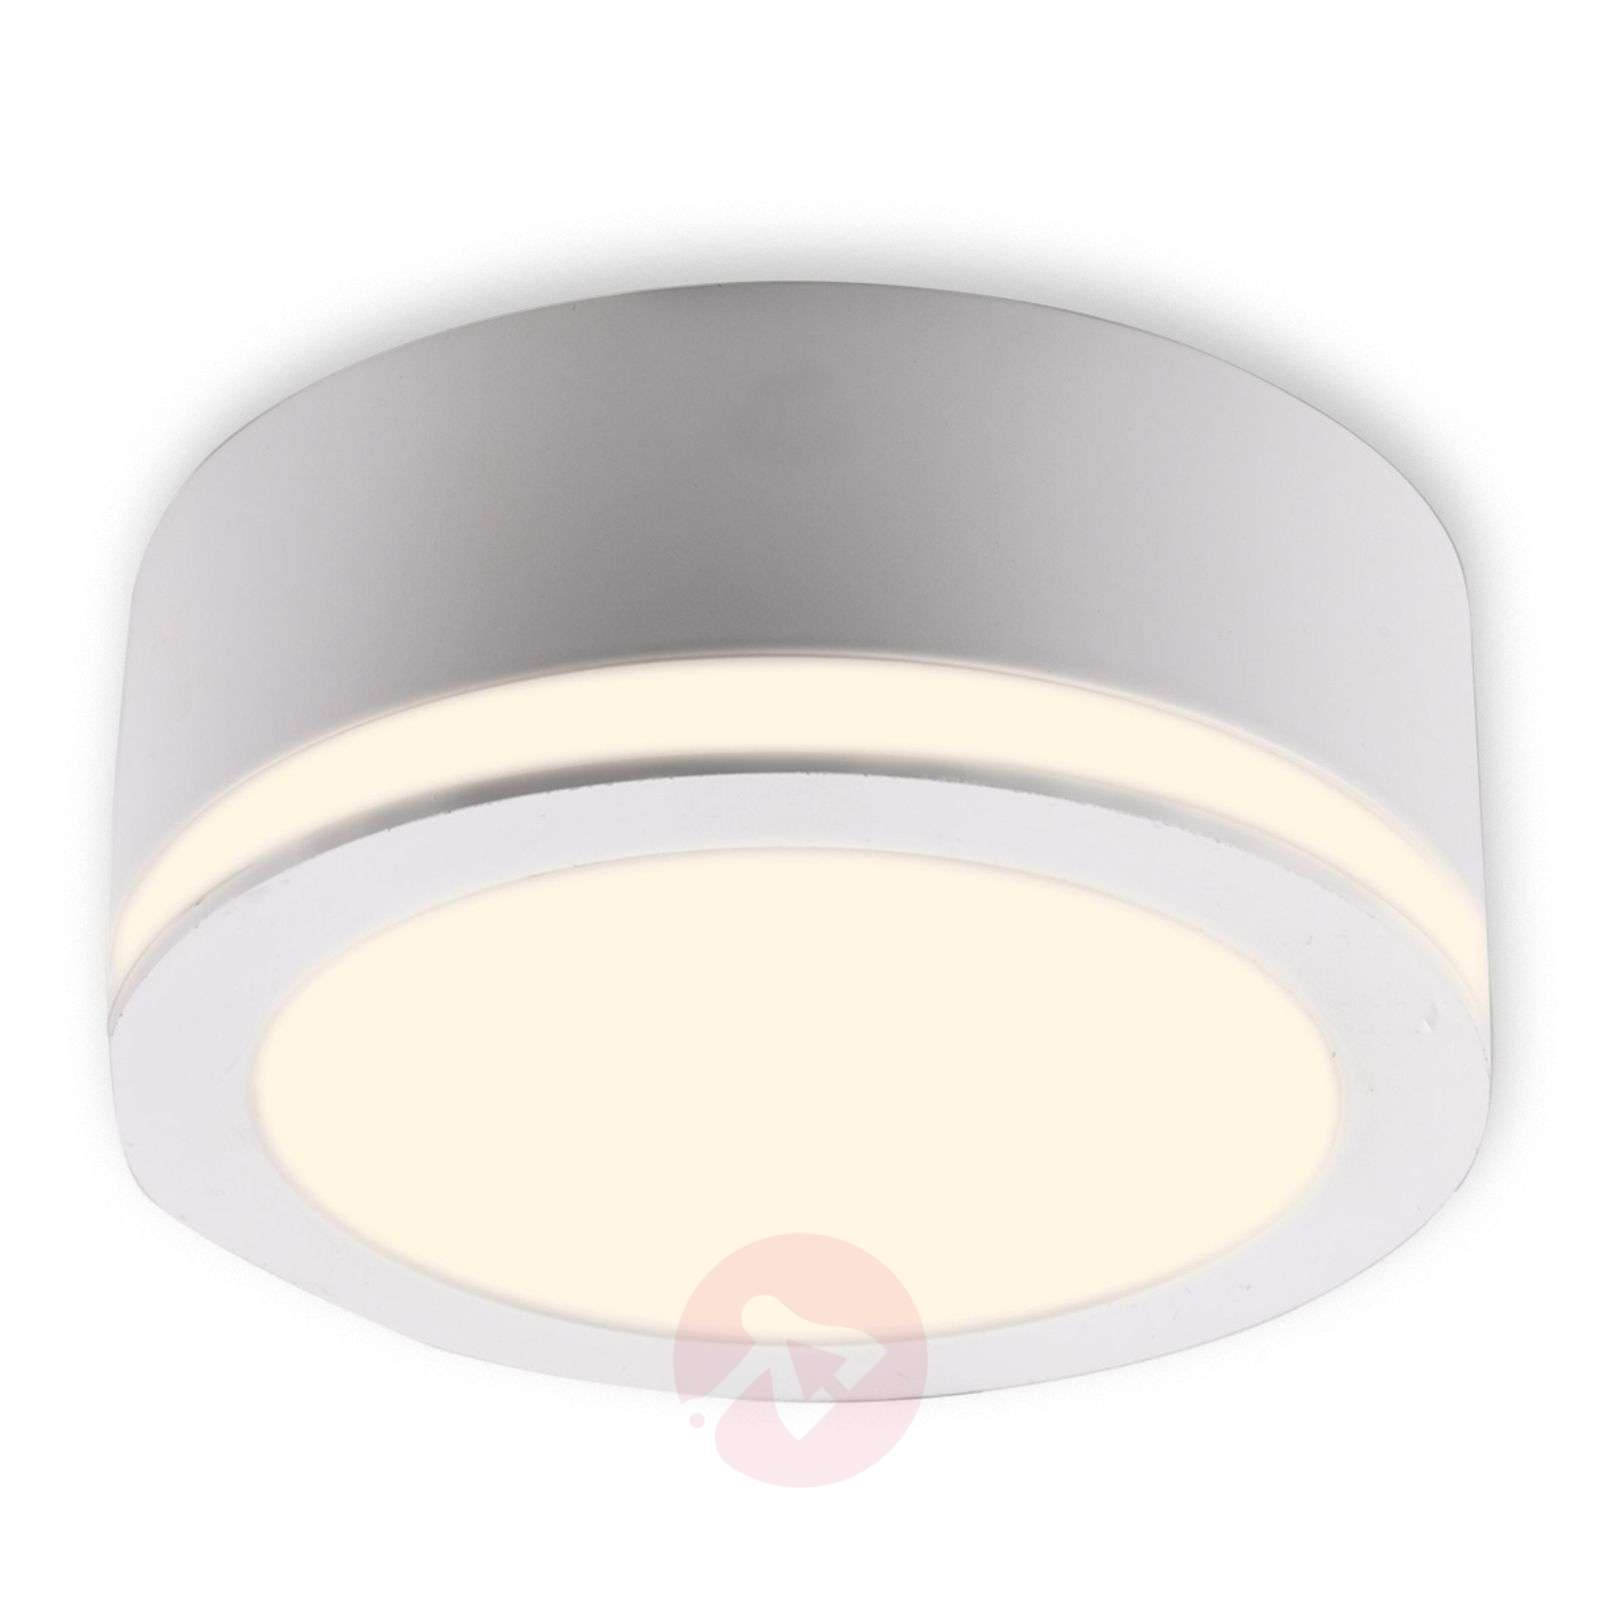 Round Biala LED surface-mounted spotlight, 10 cm Ø-9506132-01